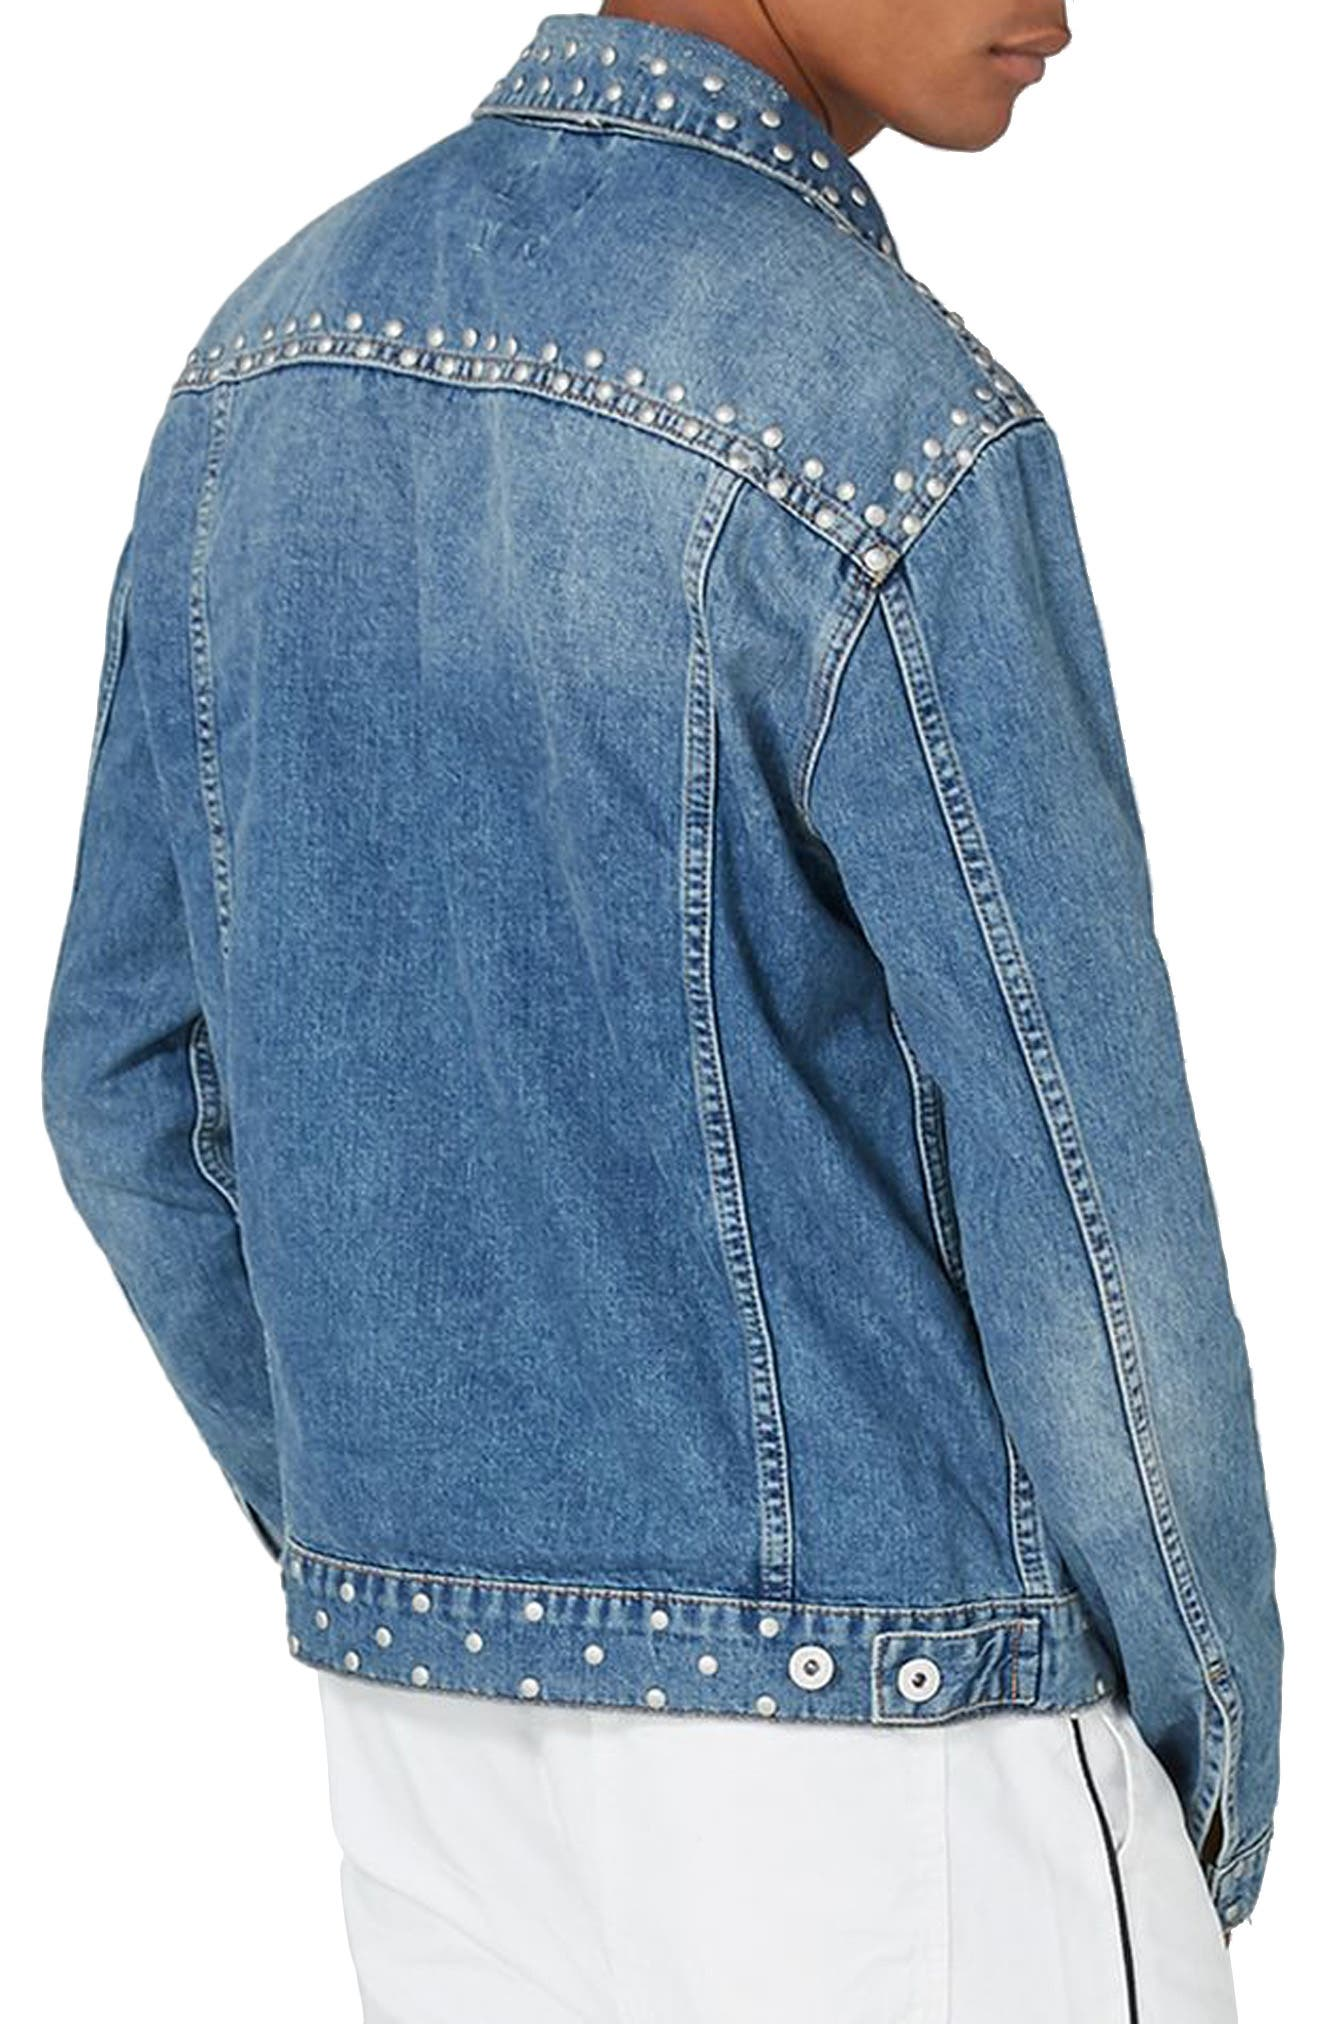 Studded Denim Jacket,                             Alternate thumbnail 2, color,                             Light Blue